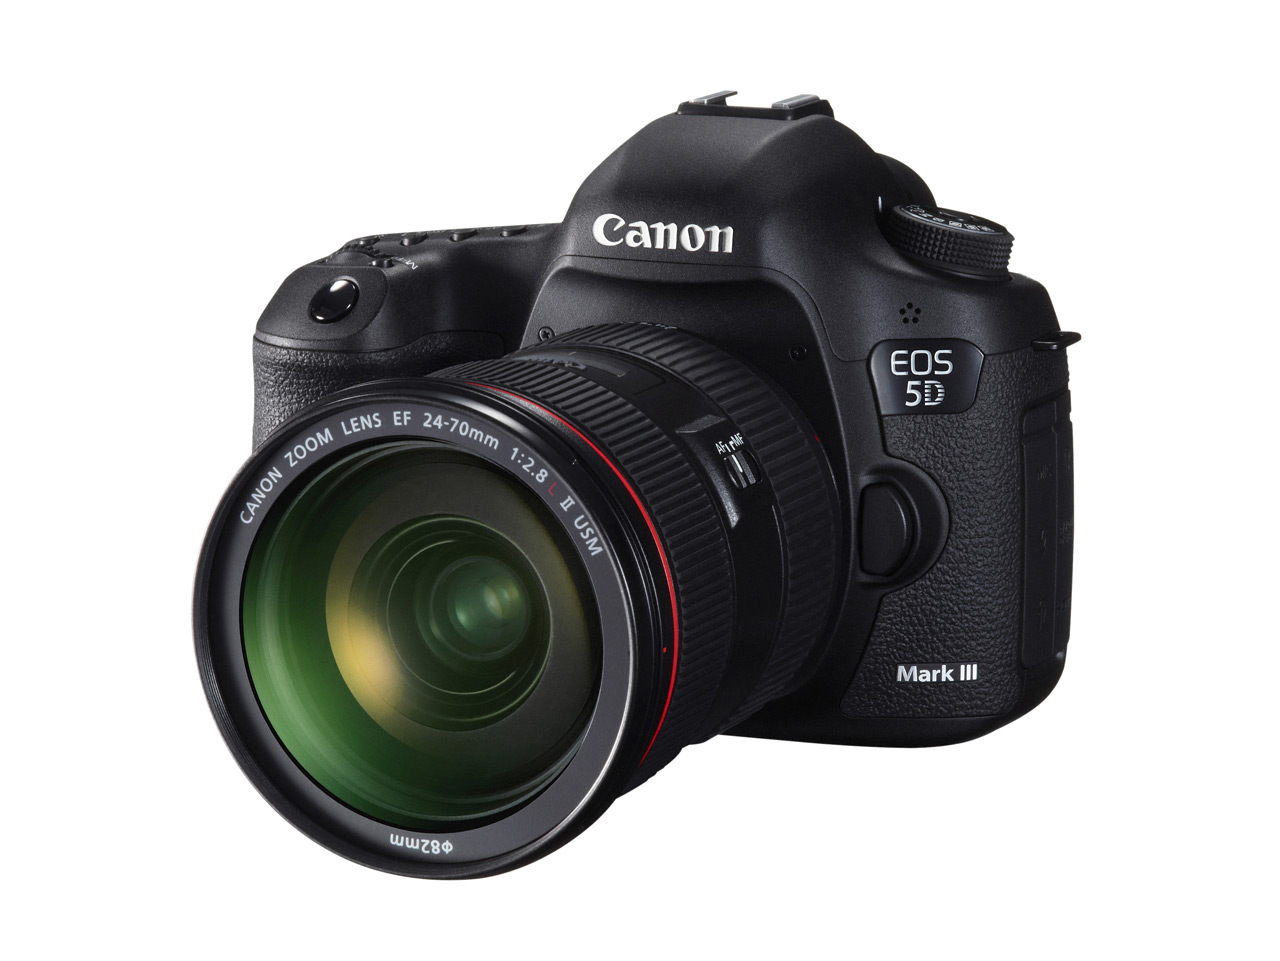 Canon 5D Mk III - RRP $3,999 [PROFESSIONAL DSLR]